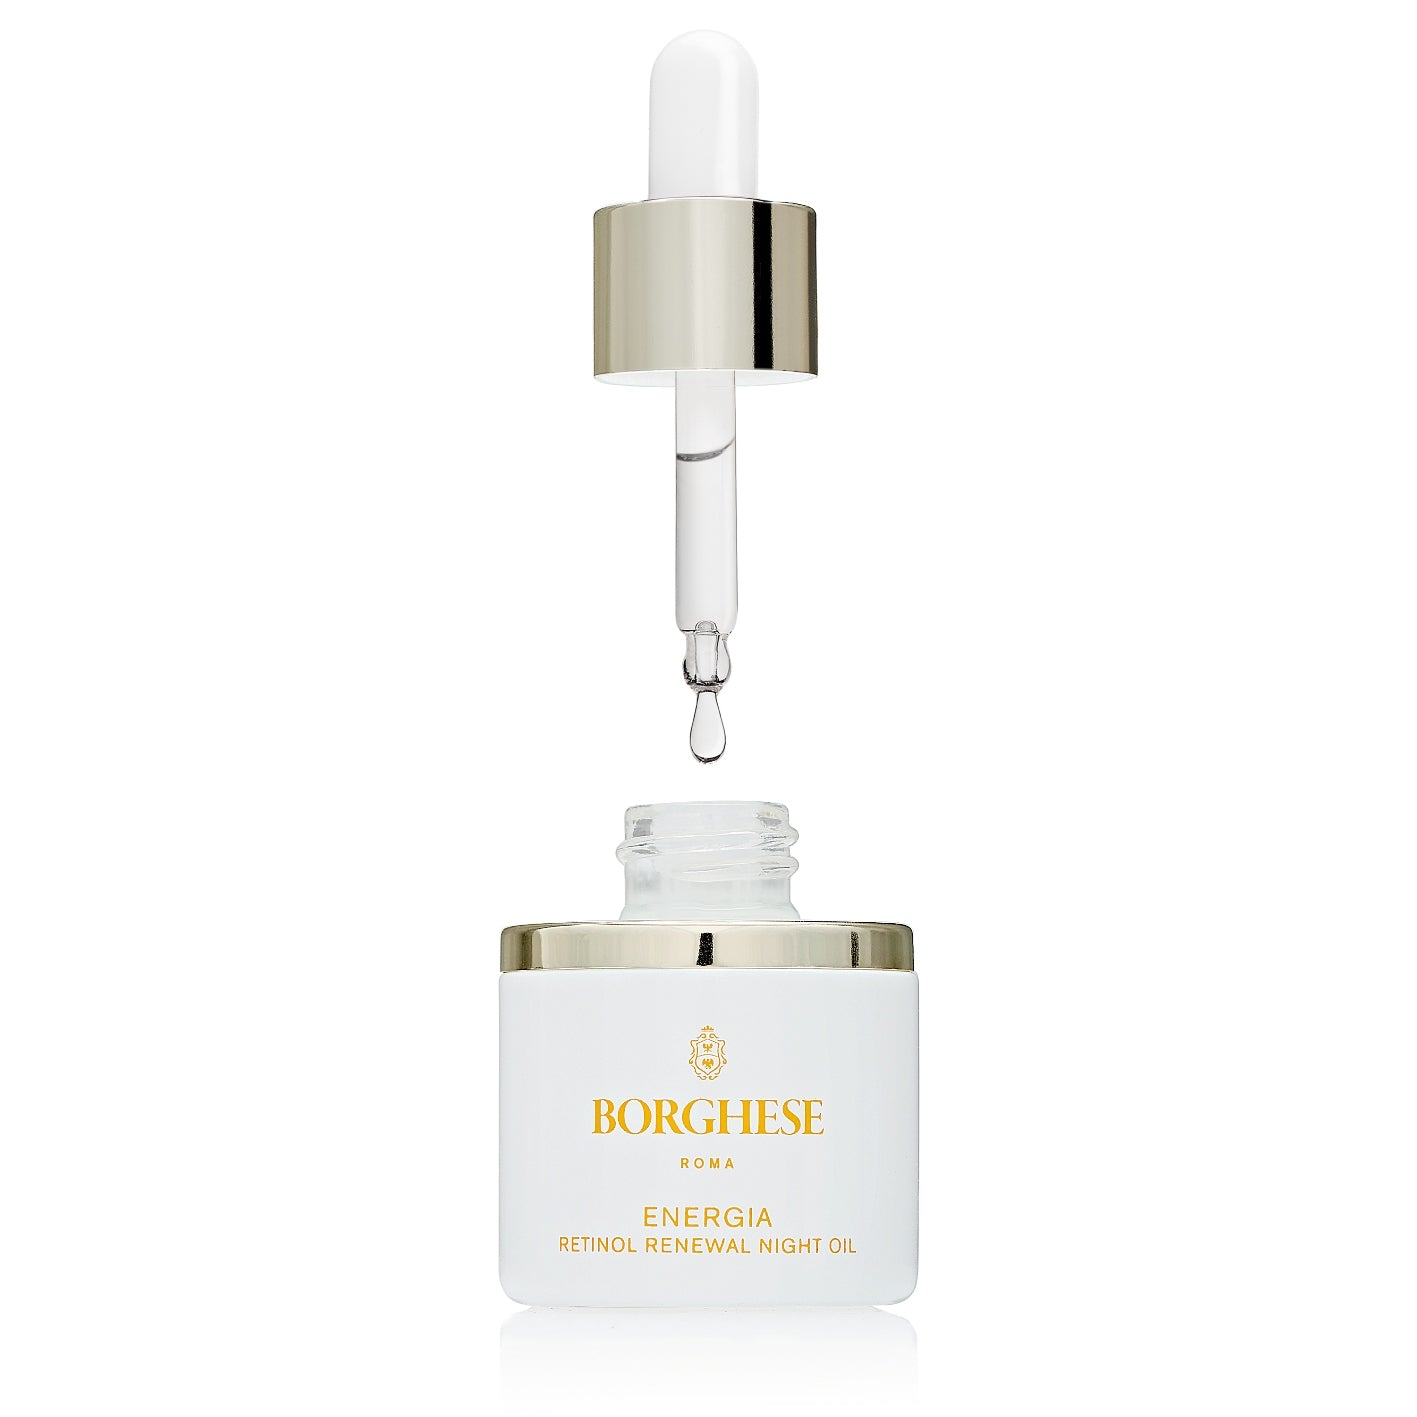 ENERGIA Retinol Renewal Night Oil